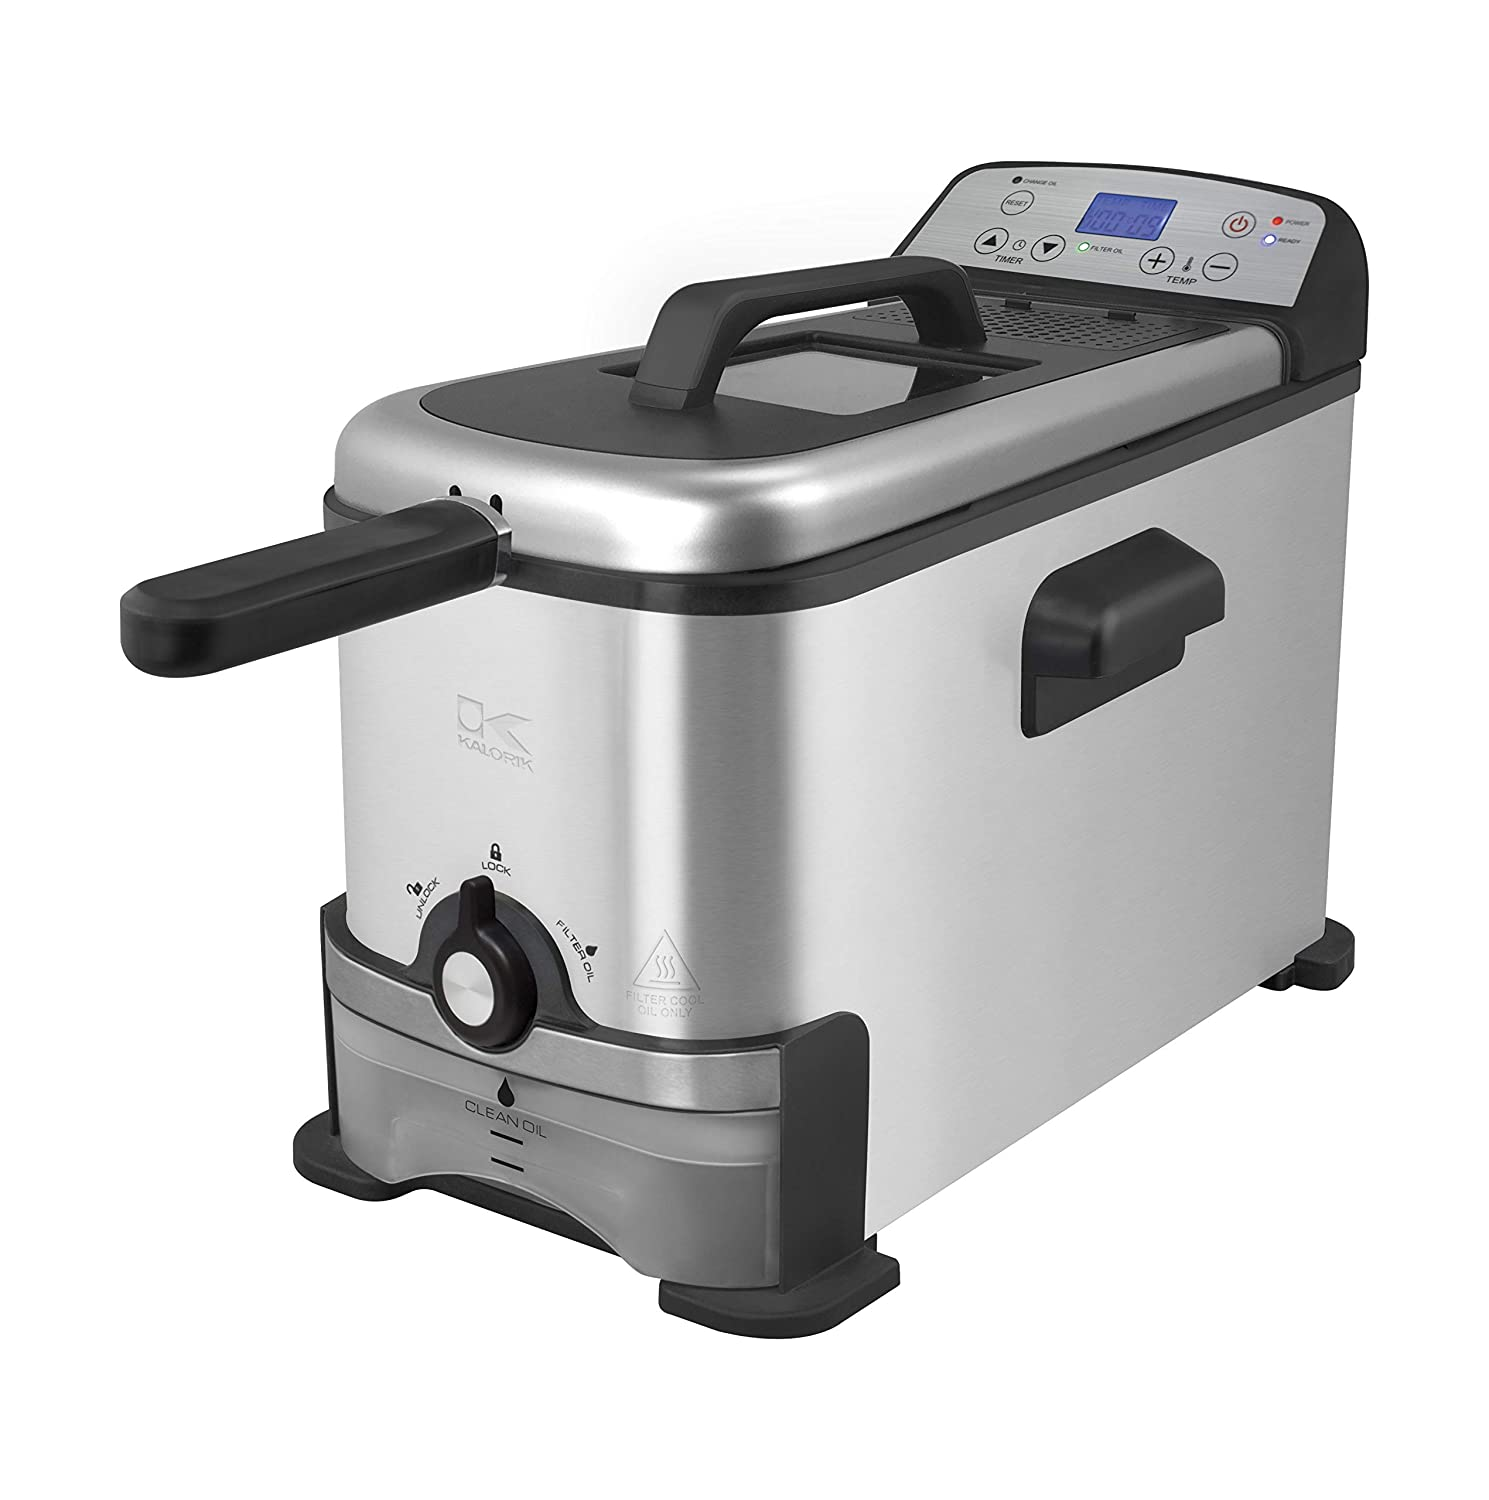 Kalorik Digital Deep Fryer with Oil Filtration